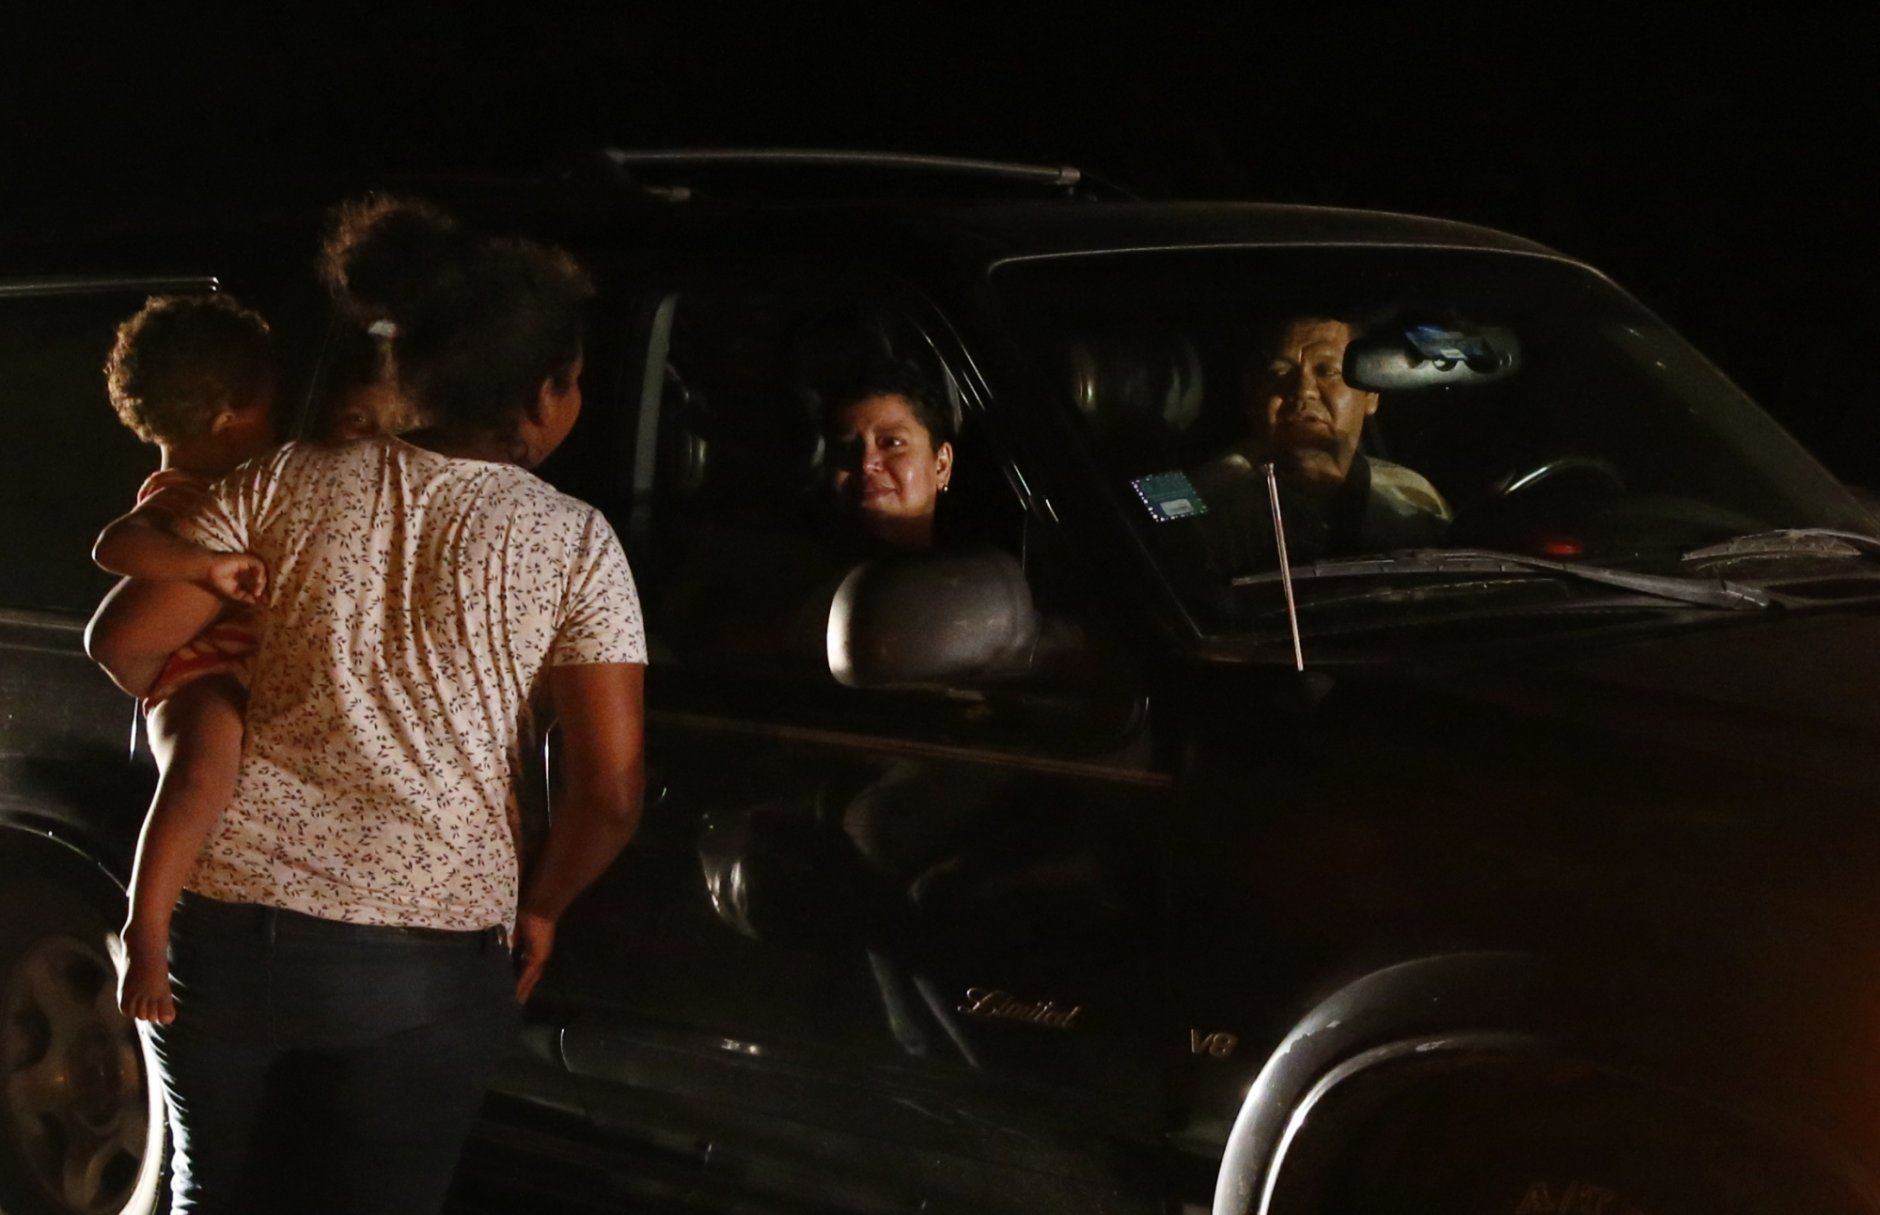 Mexicans in a car stop to talk to Honduran migrant Luz  Padilla Valverde, carrying her child, as she begs for contributions of one peso (5 cents), in Matias Romero, Oaxaca state, Mexico, Thursday, Nov. 1, 2018. Most of the main caravan of Central American migrants spent a rain-drenched night outside, before continuing their slow walk through southern Mexico.(AP Photo/Rebecca Blackwell)